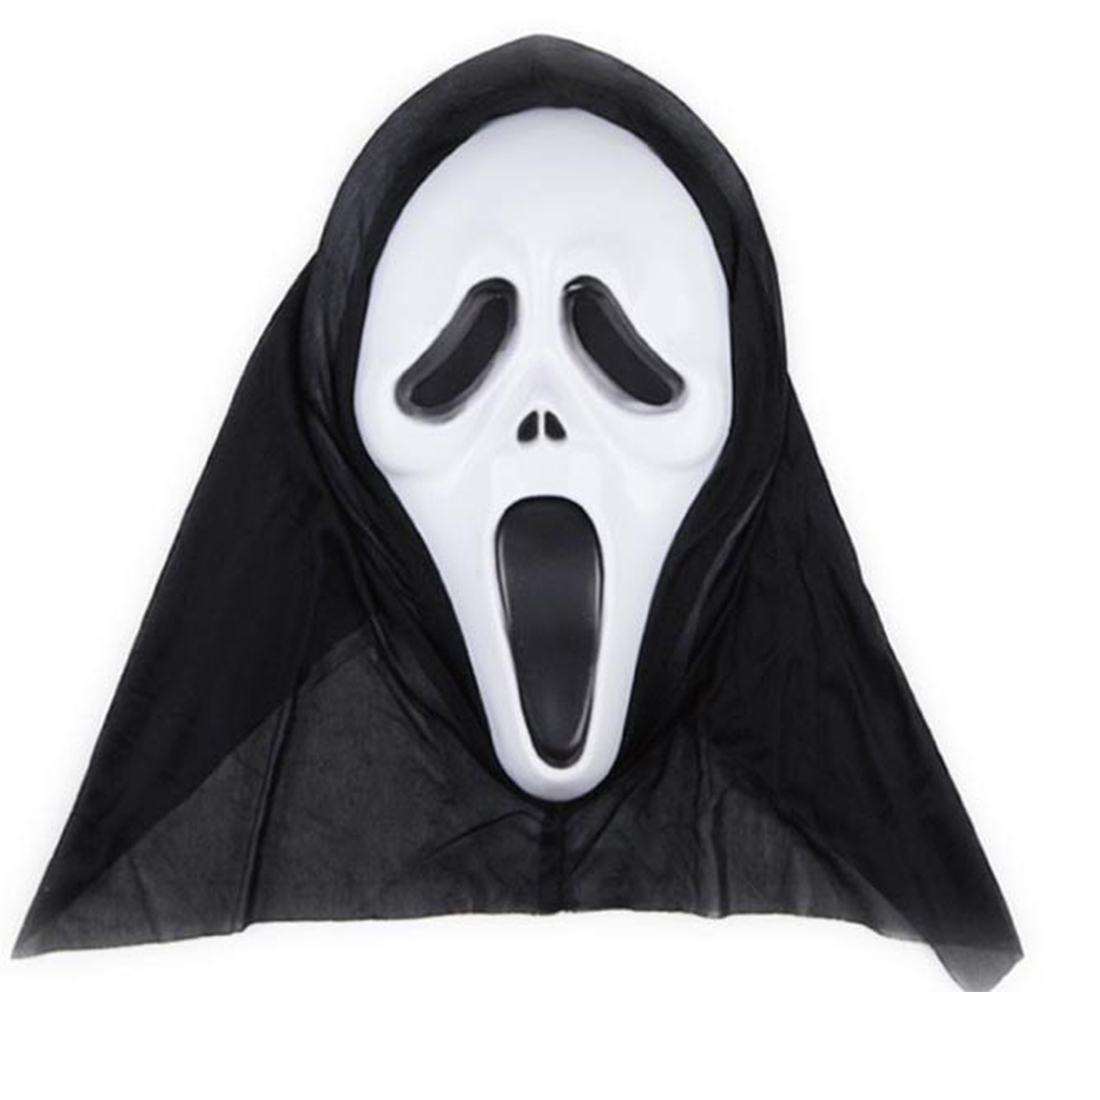 Aliexpress.com : Buy Hot Sale 1Pc Scary Ghost Face Scream Mask ...